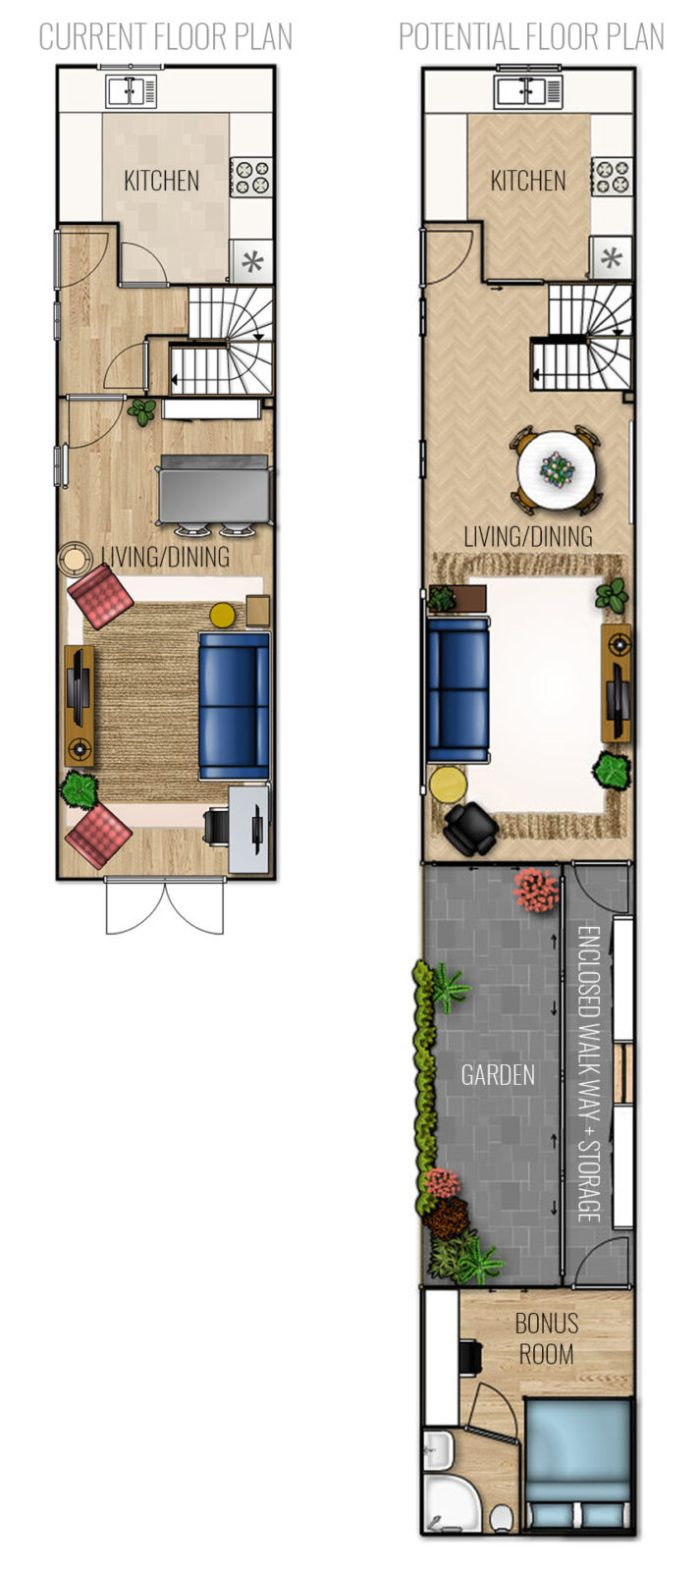 1st Floor Current vs Potential Extension Living Dining Floor Plan